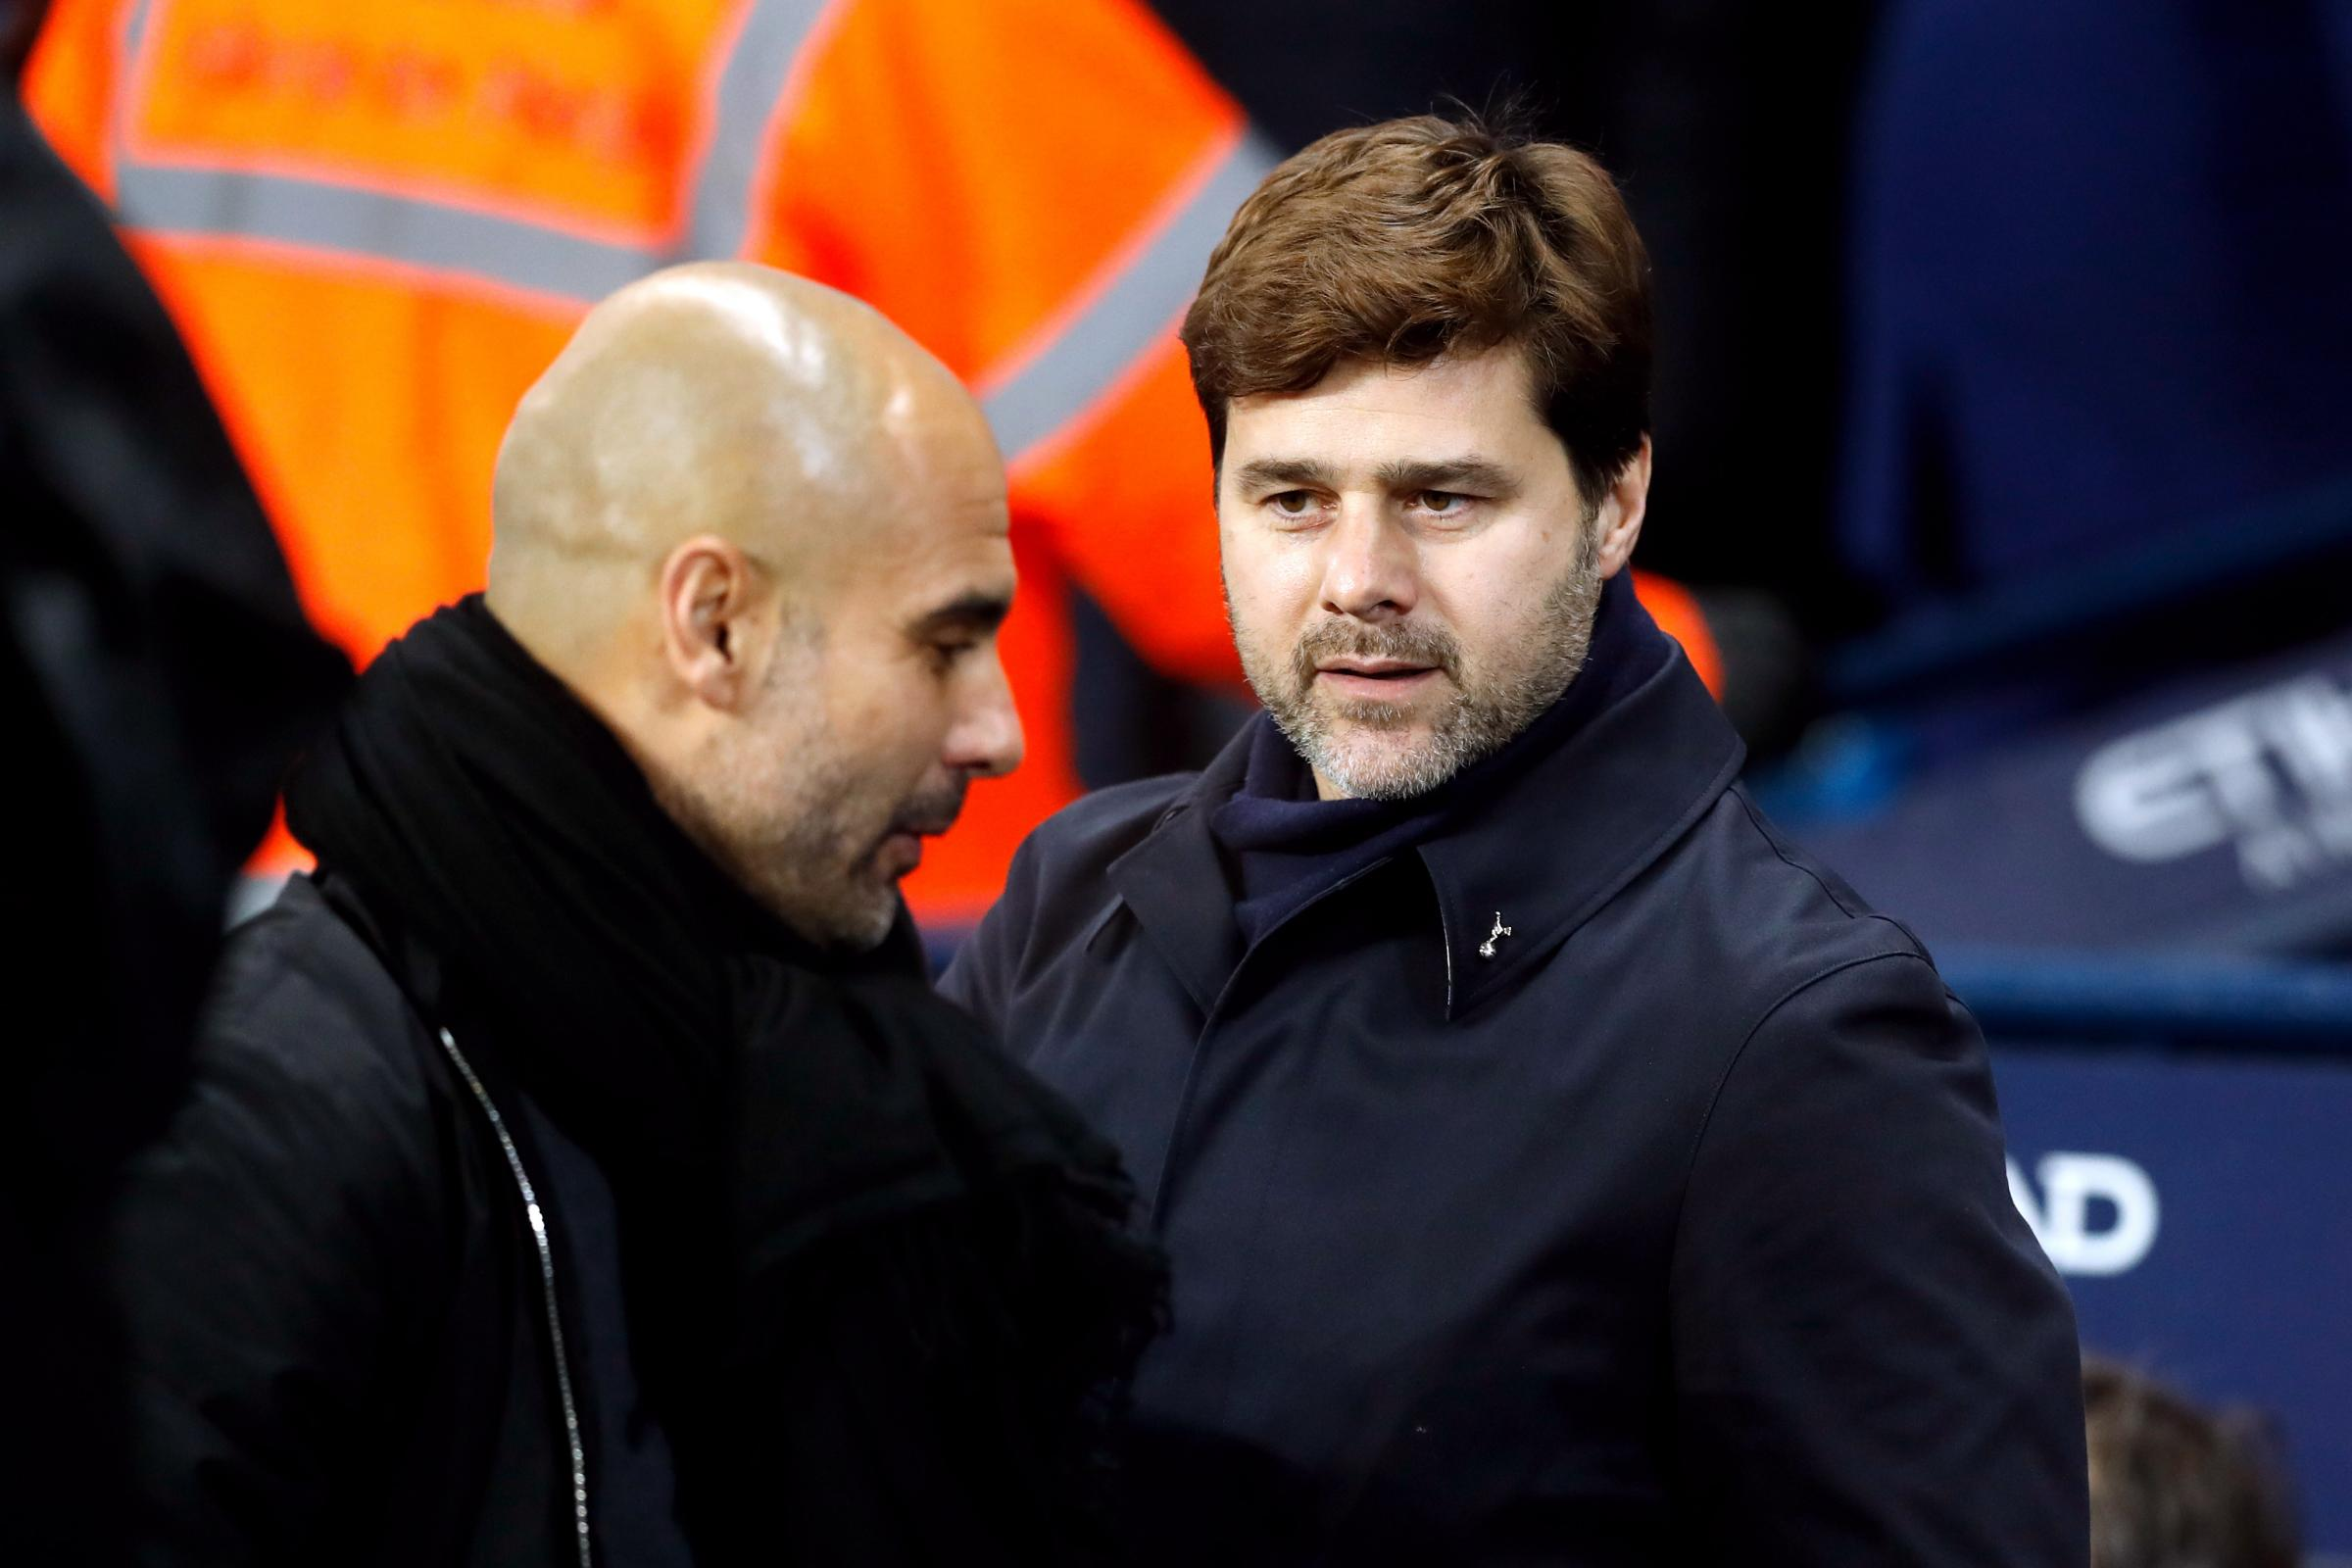 Pep Guardiola, left, and Mauricio Pochettino